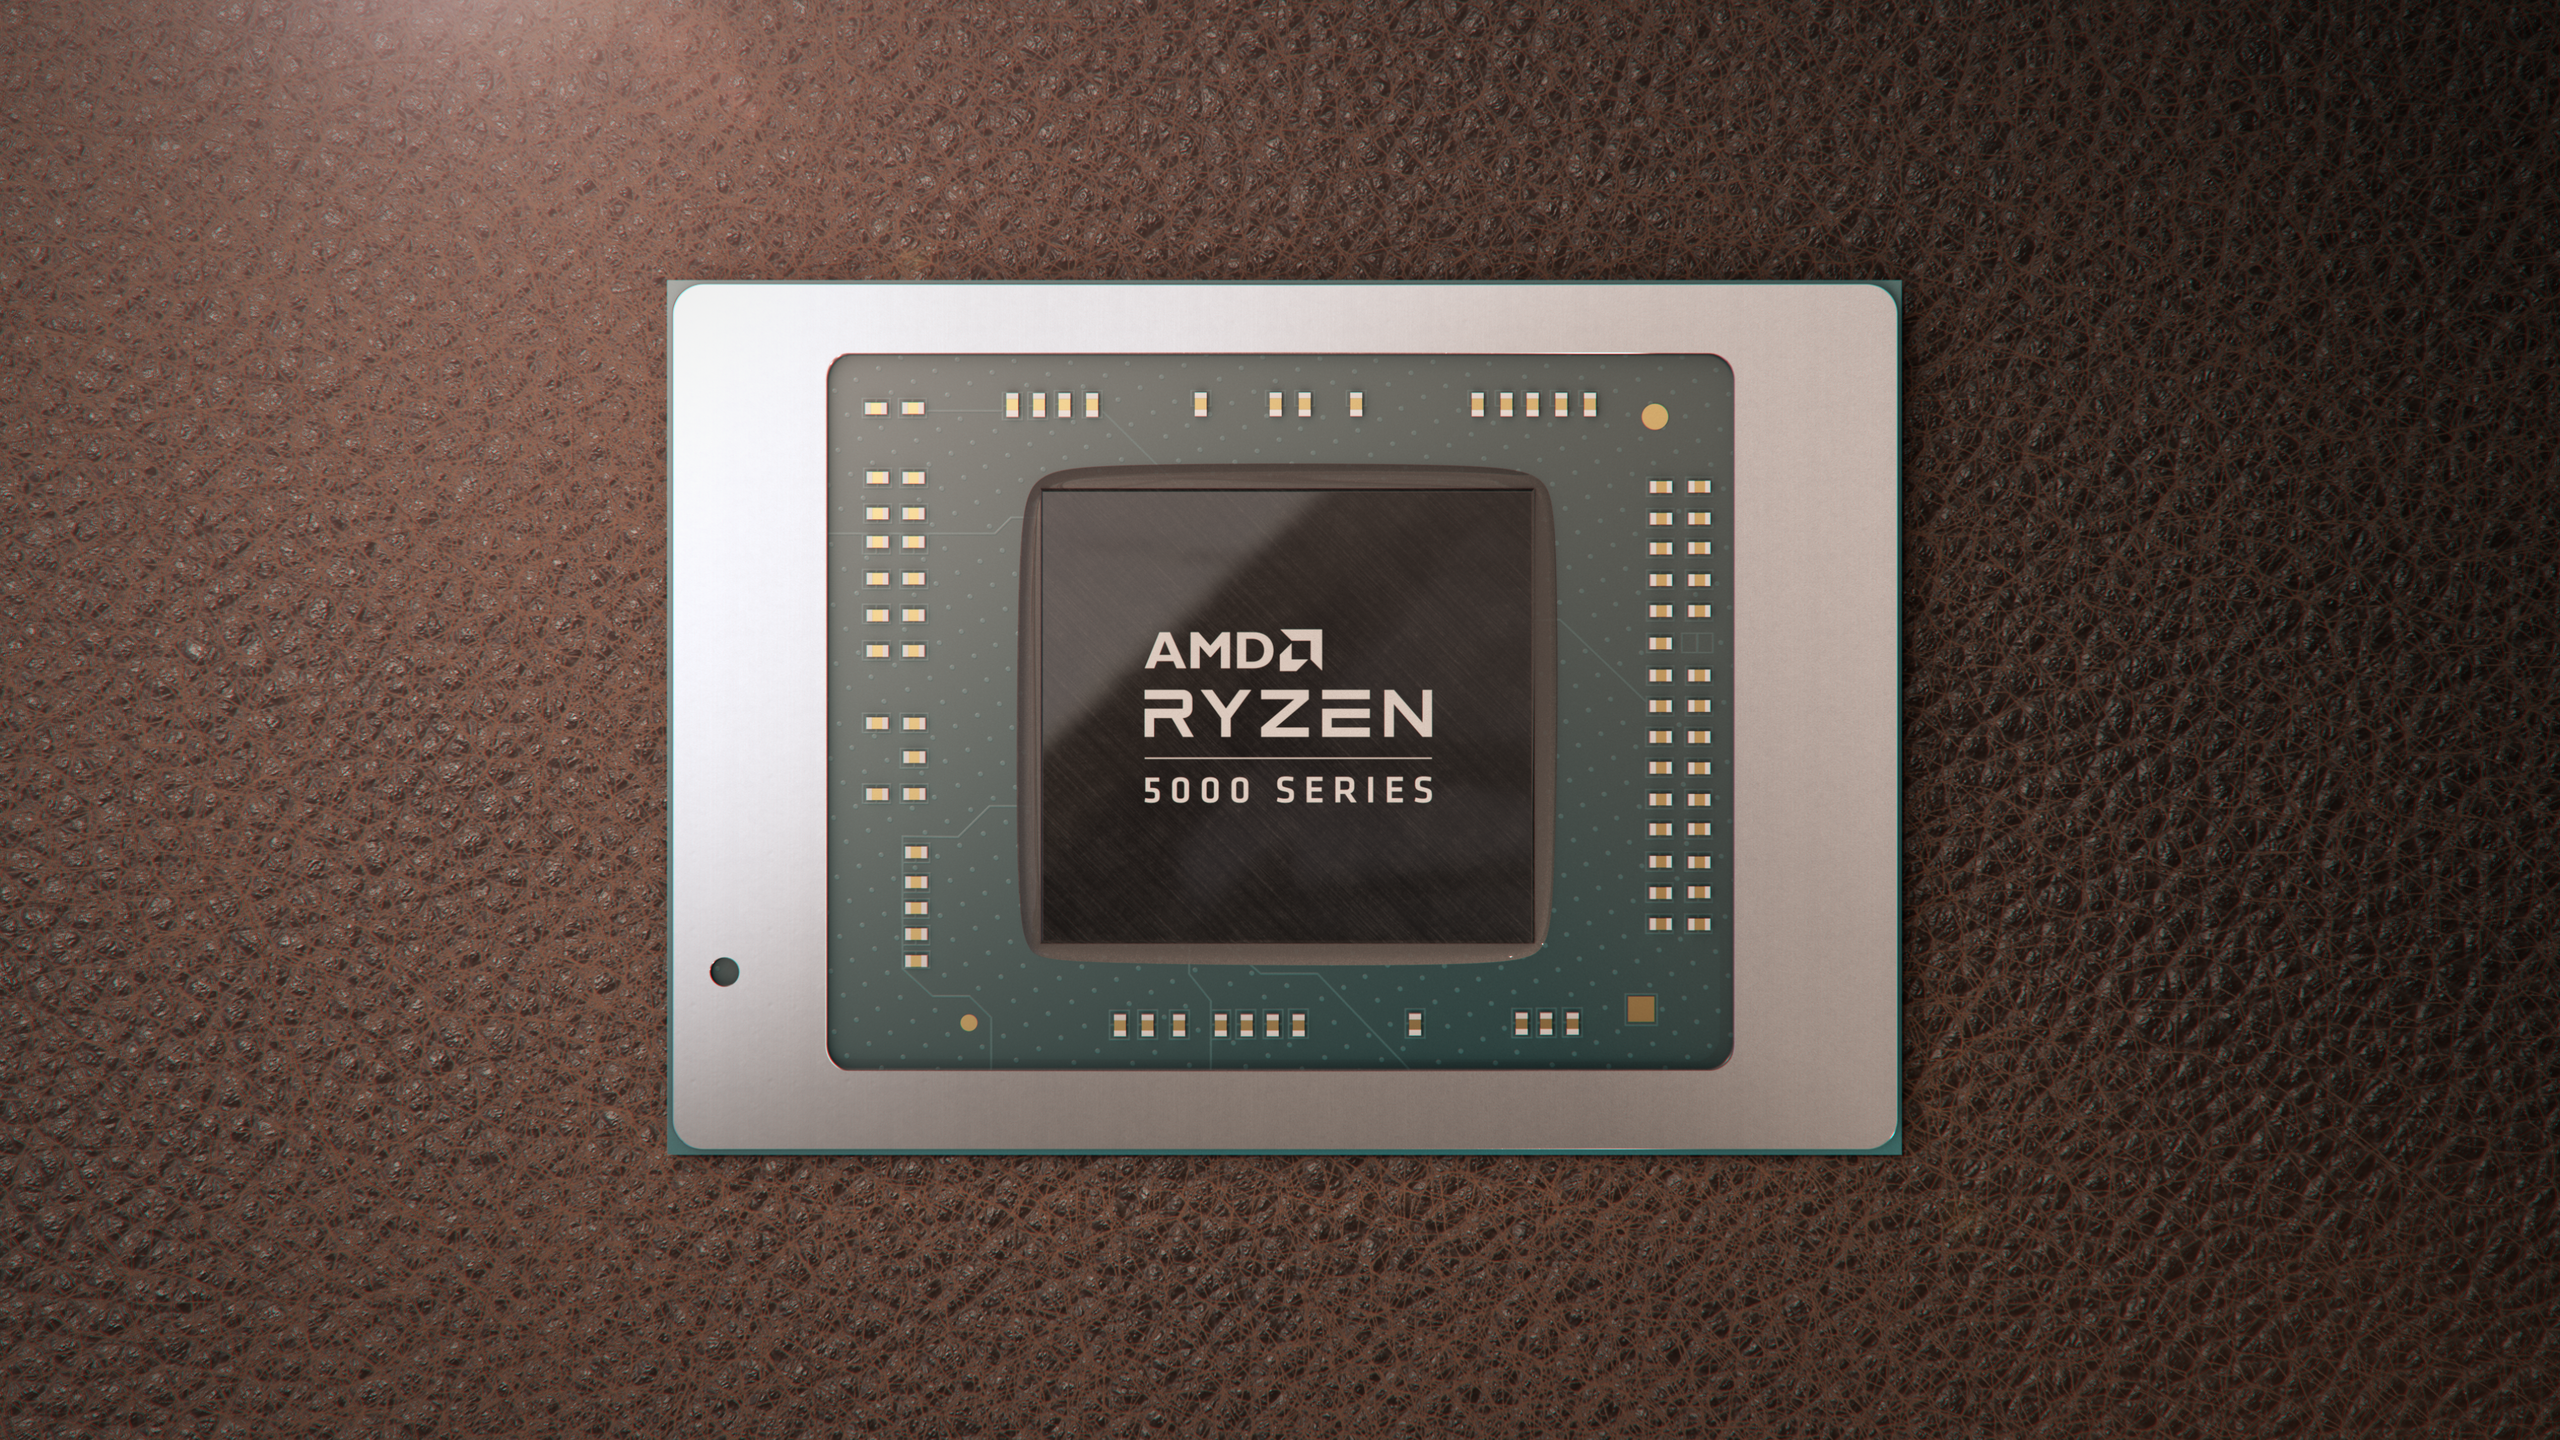 Amd Announces Ryzen 5000 Mobile Lineup New Hx Series Led By The Ryzen 9 5980hx Available In Overclockable 45 W Tdp Notebookcheck Net News